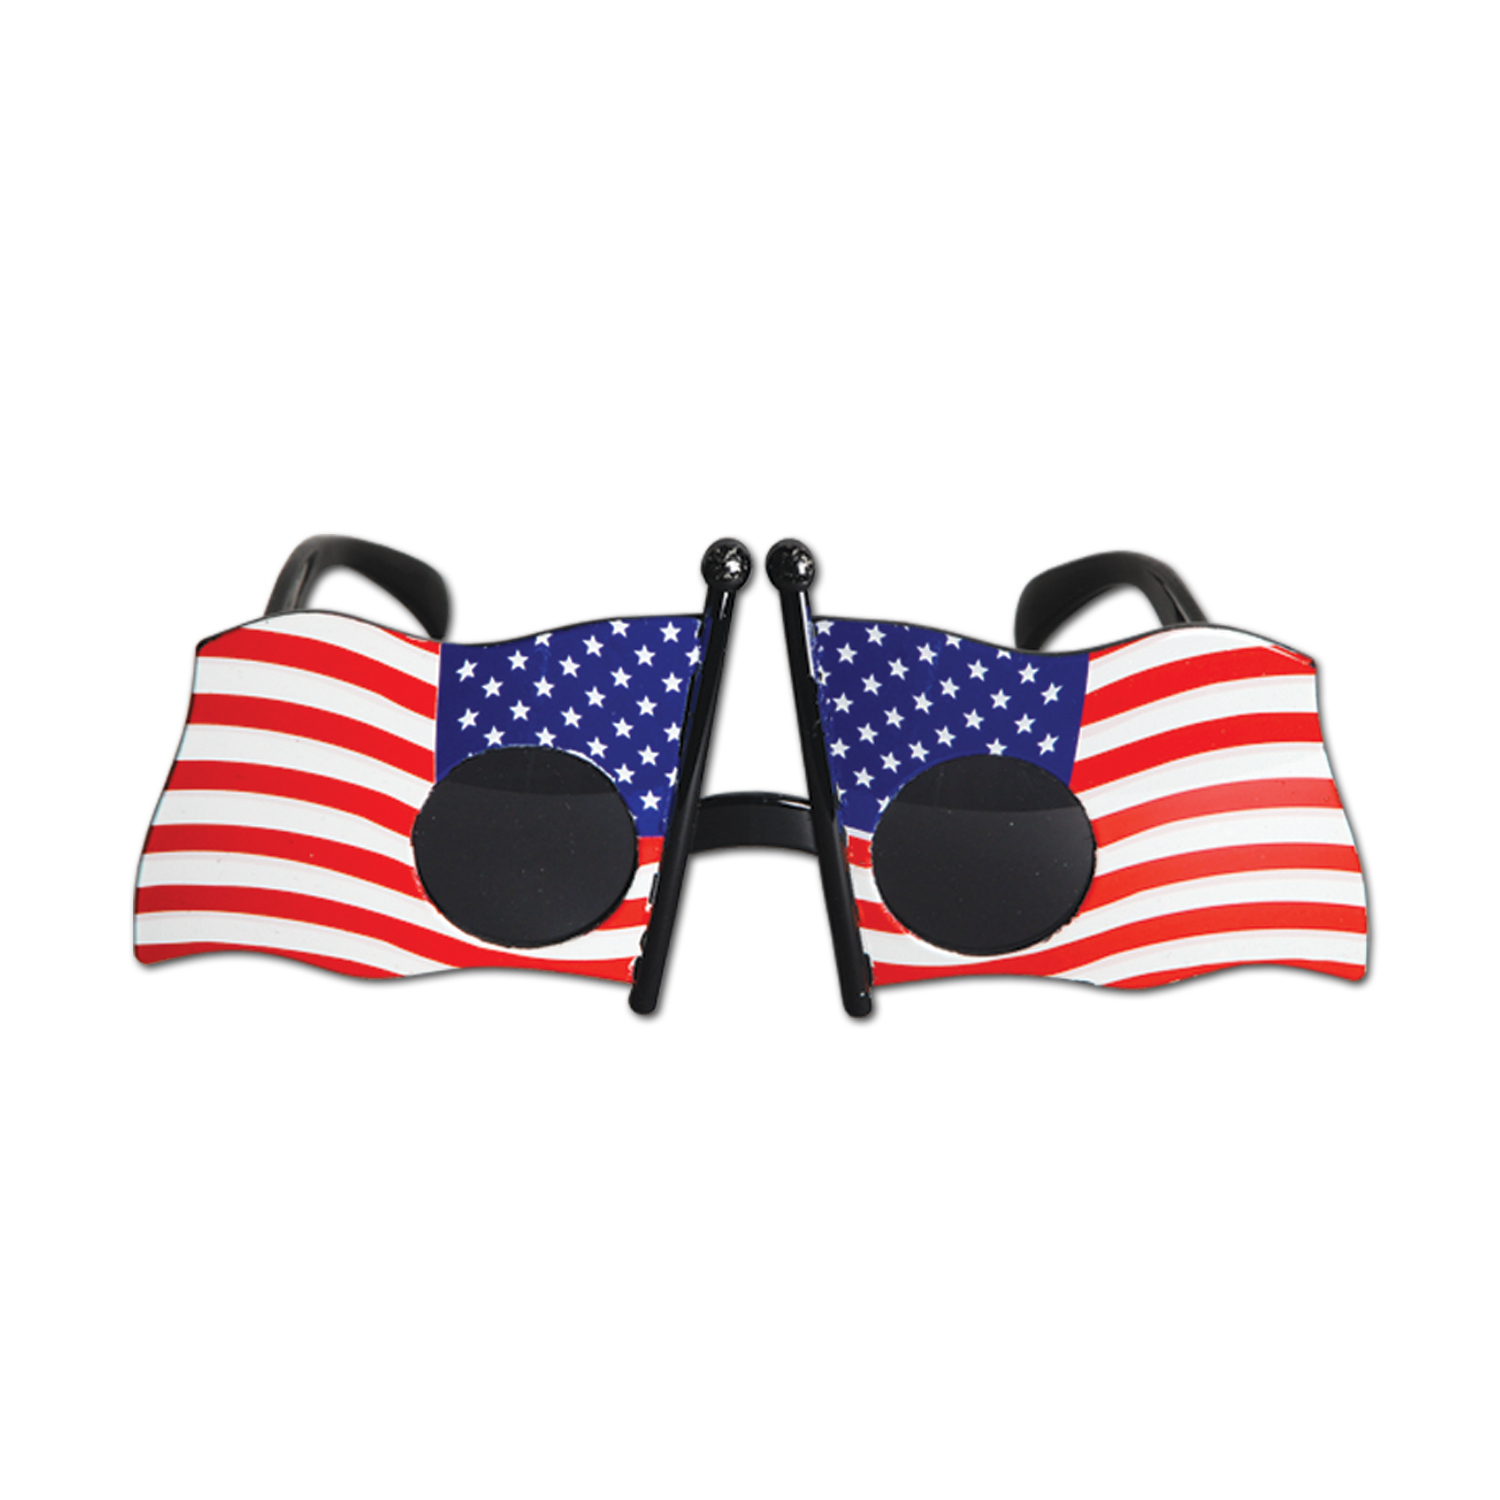 eyeglasses that look like American Flags